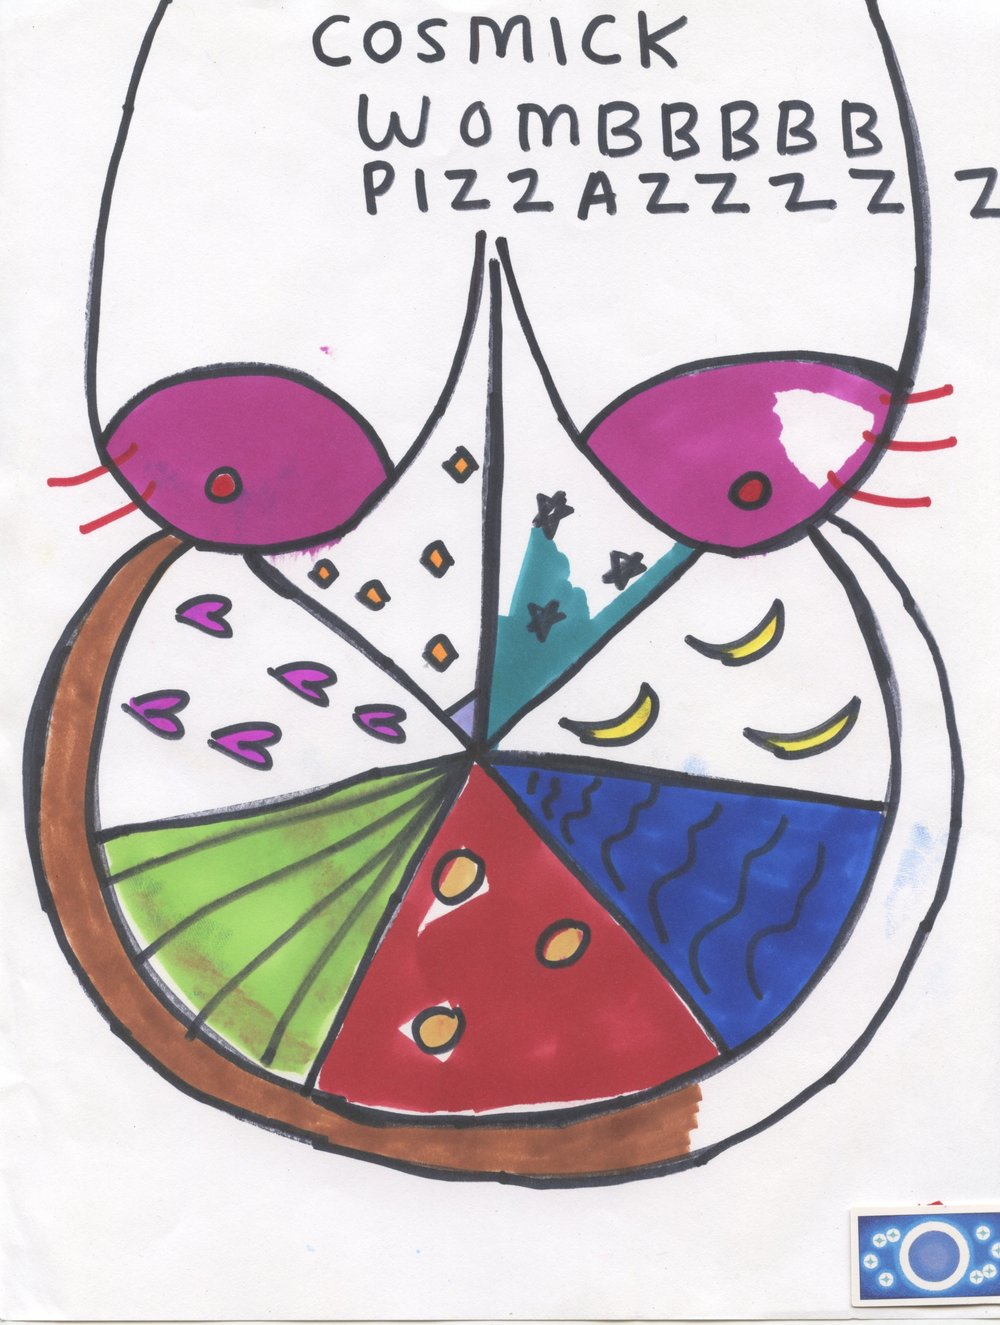 Cosmick Womb Pizza.jpeg